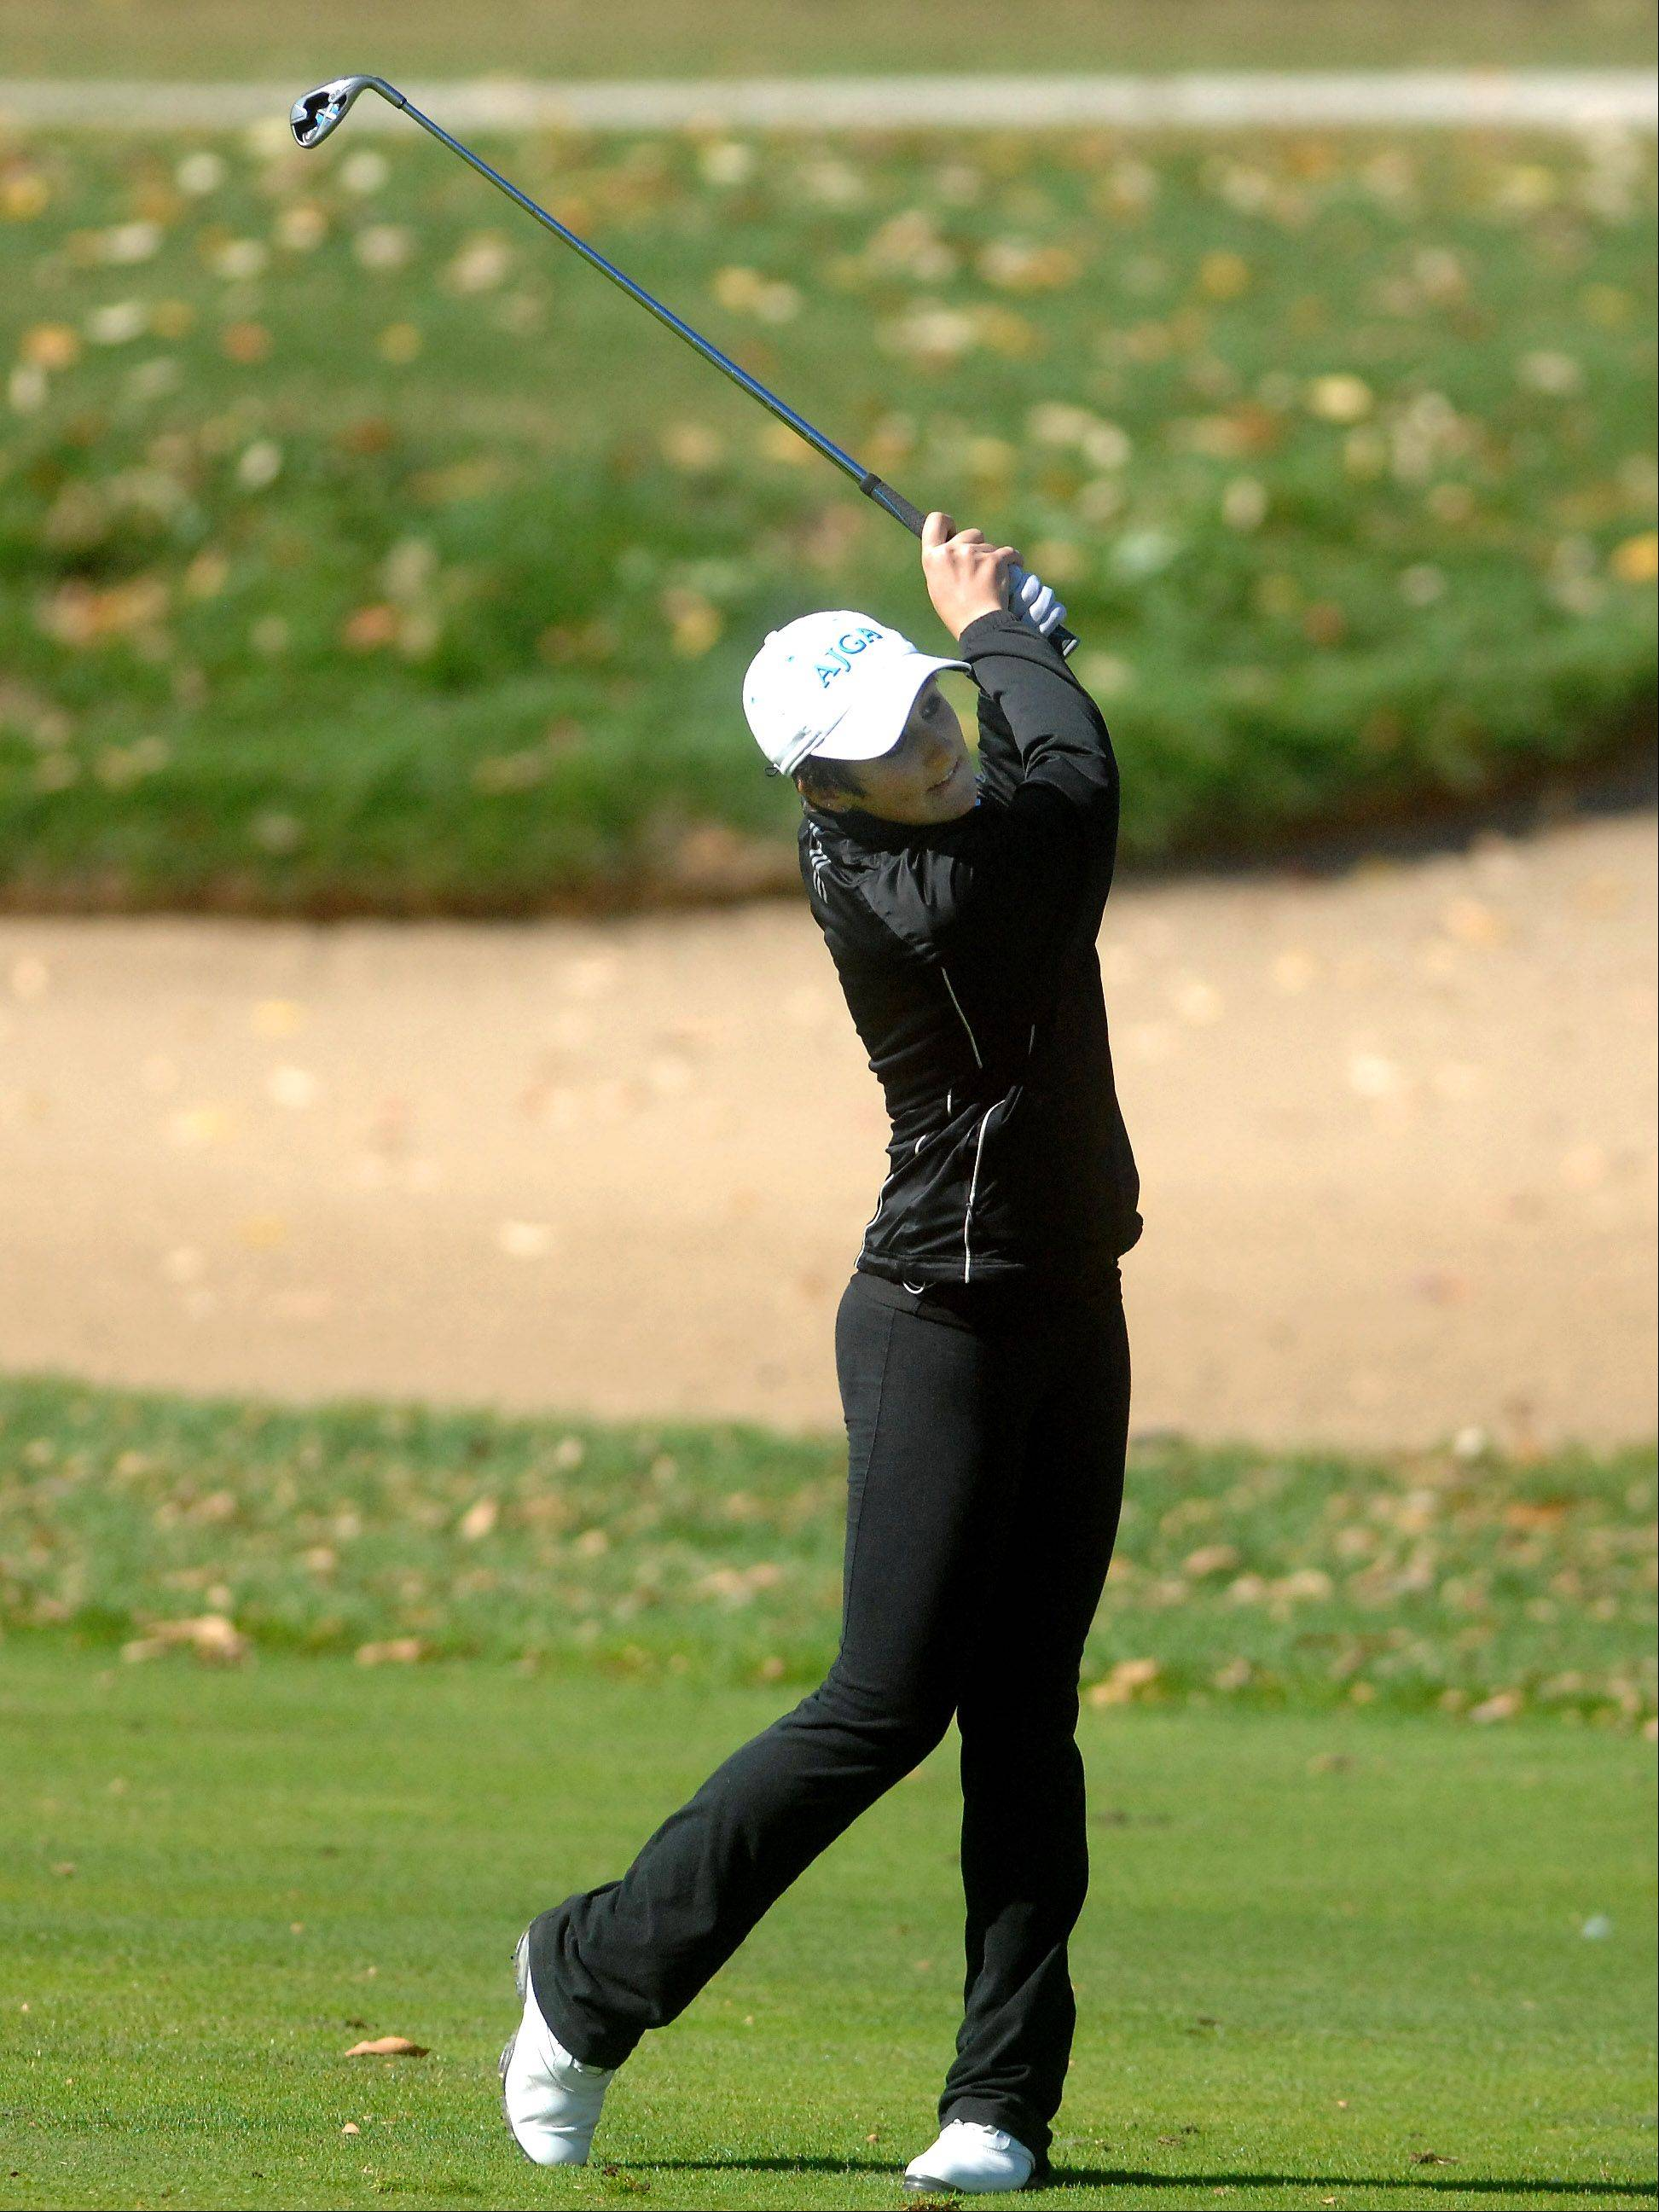 Ariana Furrie of St. Charles North hits from the 18th fairway during Monday's Burlington Central sectional girls golf action at Randall Oaks in West Dundee.